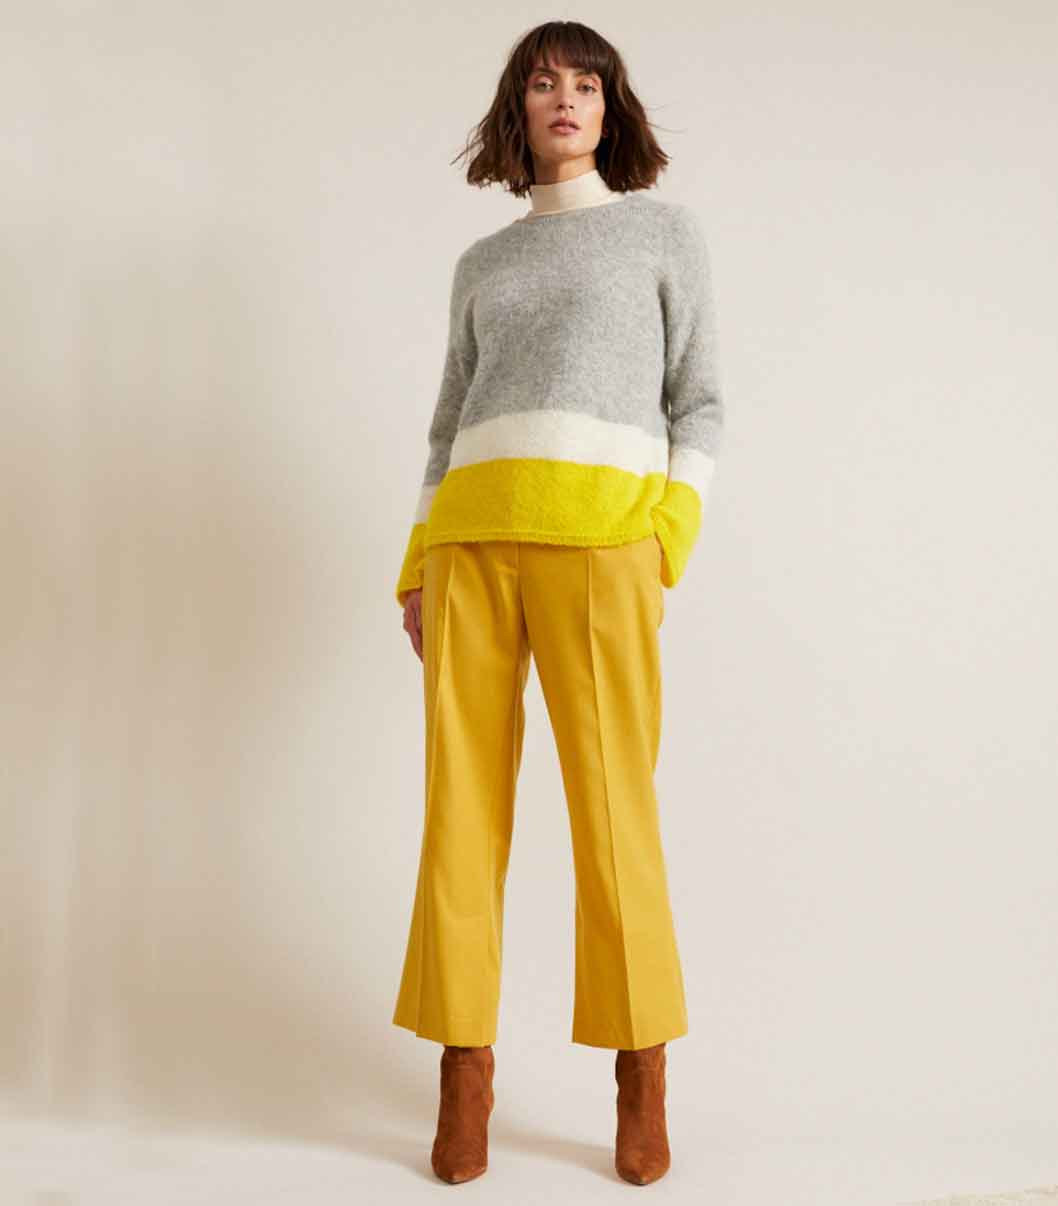 LANIUS Germany German Brands Clothing sustainable and ethical good fashion guide ECOLOOKBOOK